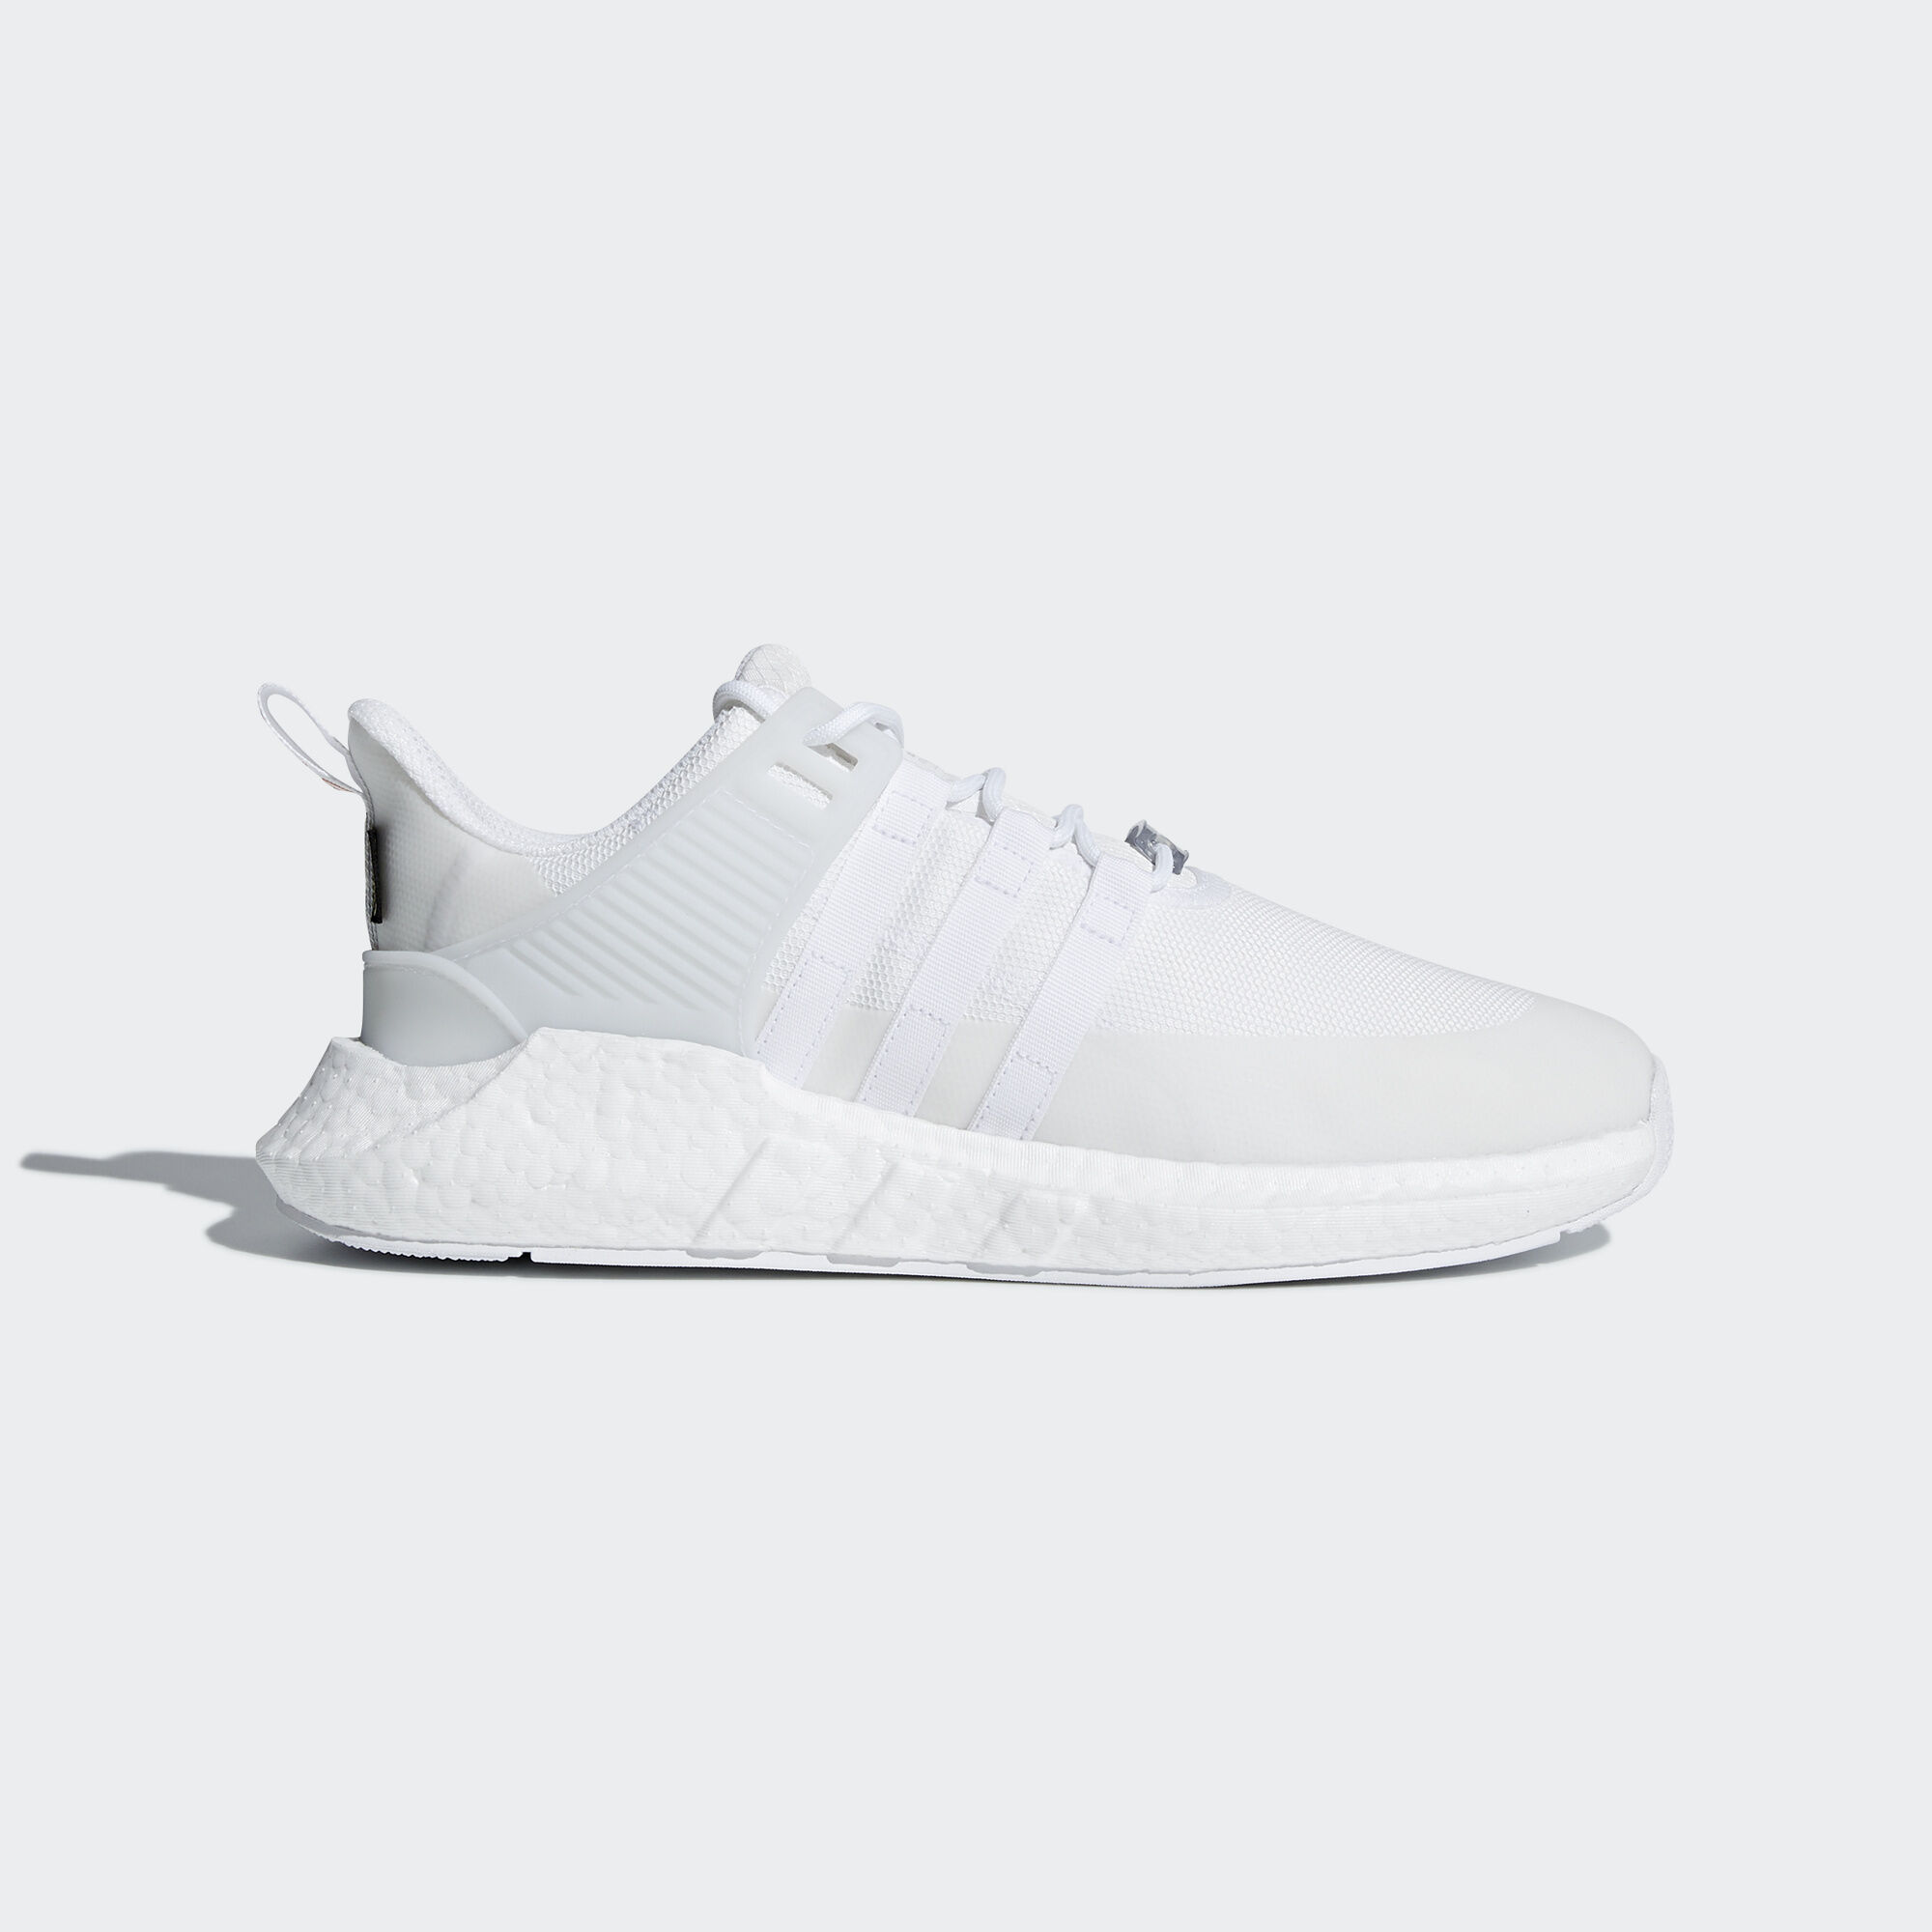 cheap pre order adidas Originals EQT Support 93/17 Trainers In White DB1444 cost cheap online visa payment for sale QHQml5